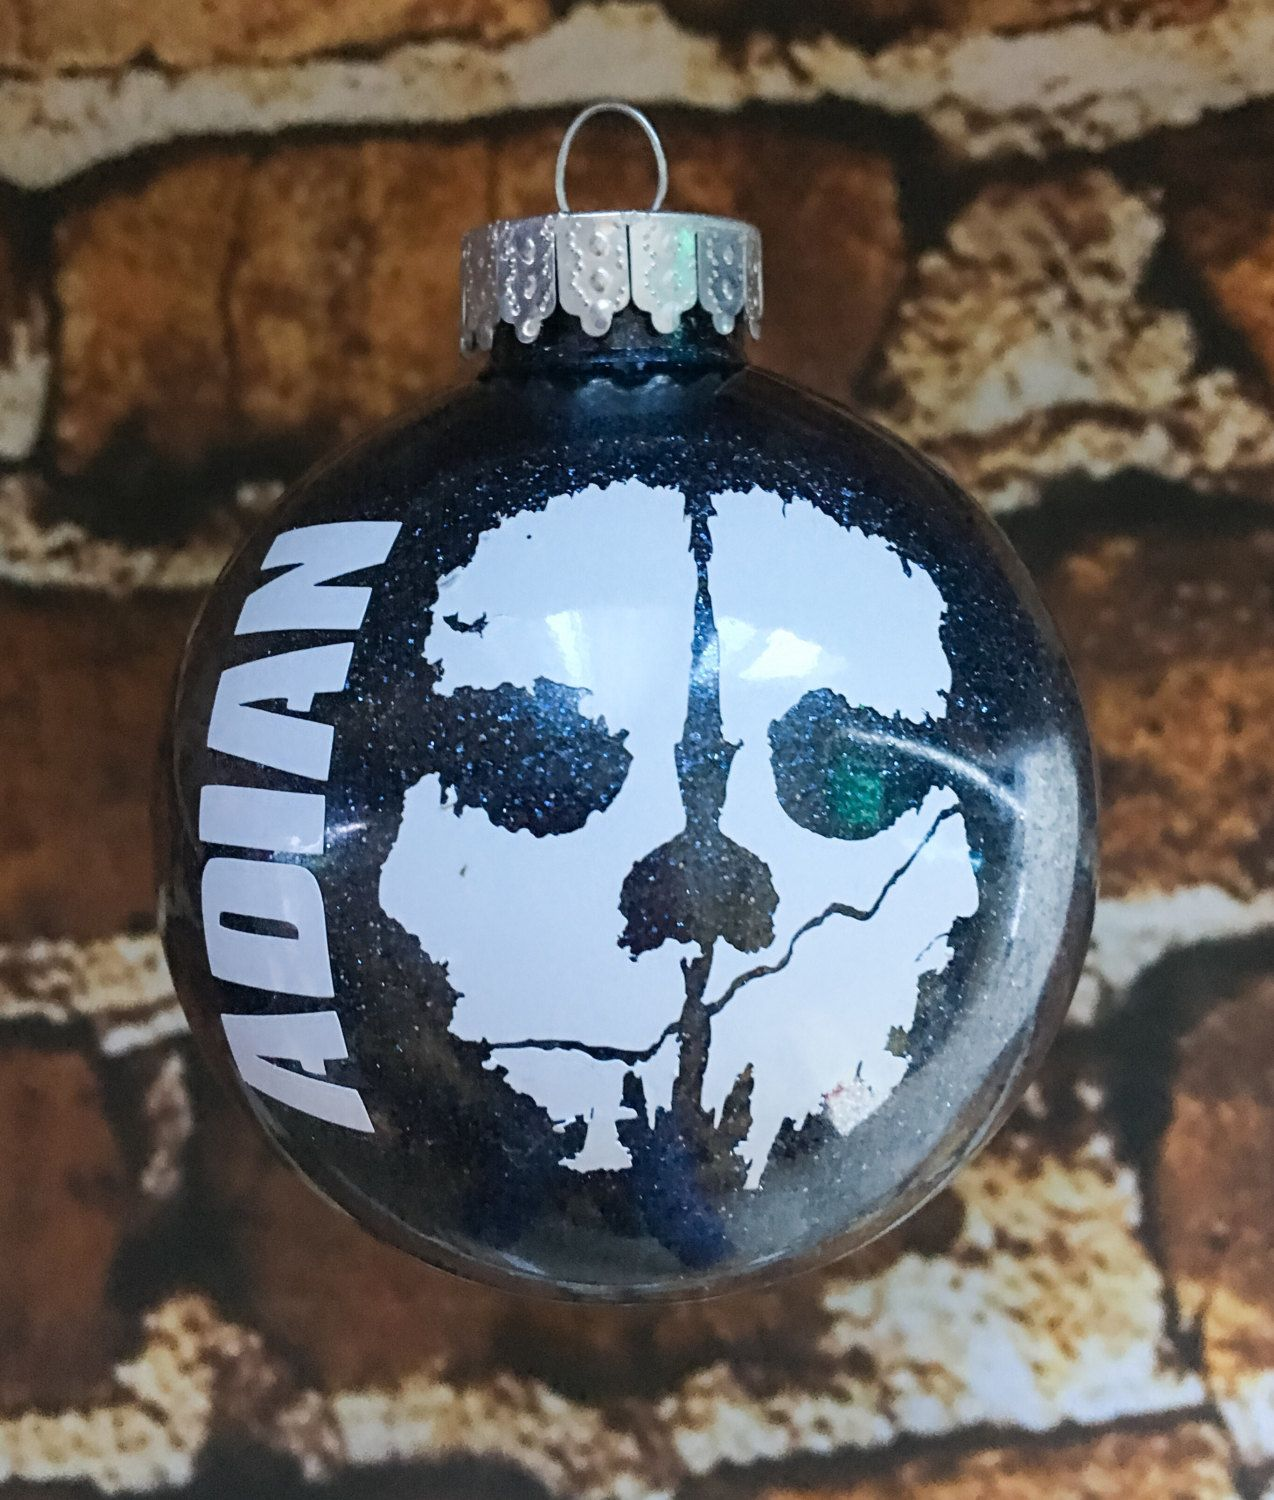 Call Of Duty Xbox Glitter Personalized Christmas Ornament By Expressionallyforyou Christmas Ornaments Personalized Christmas Ornaments Personalized Christmas